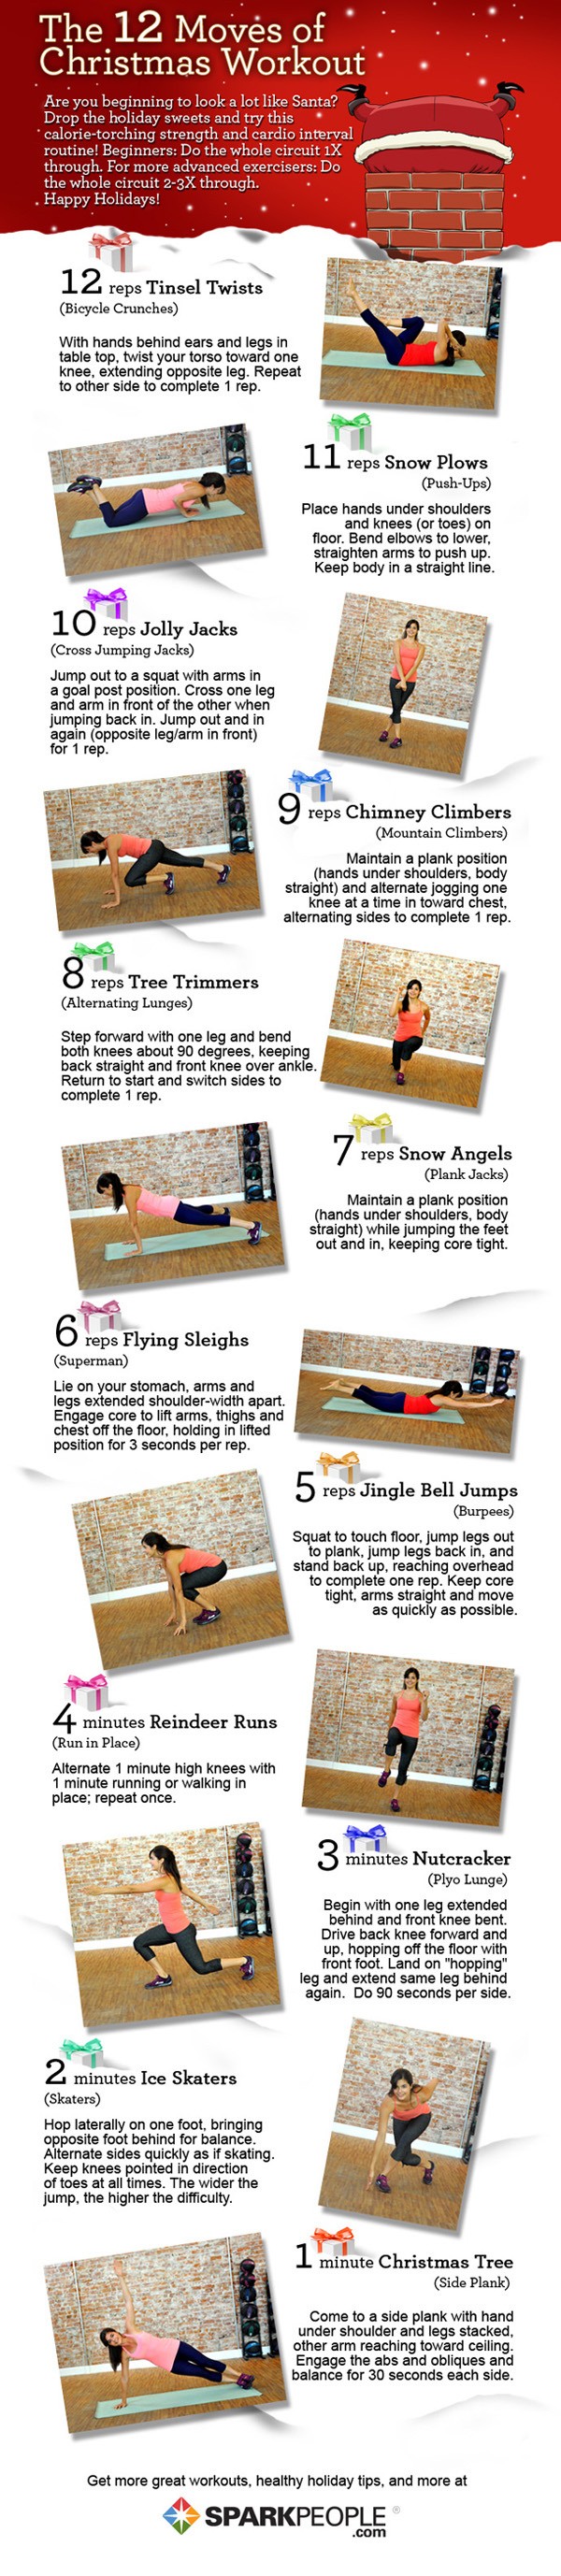 The 12 Moves of Christmas Workout